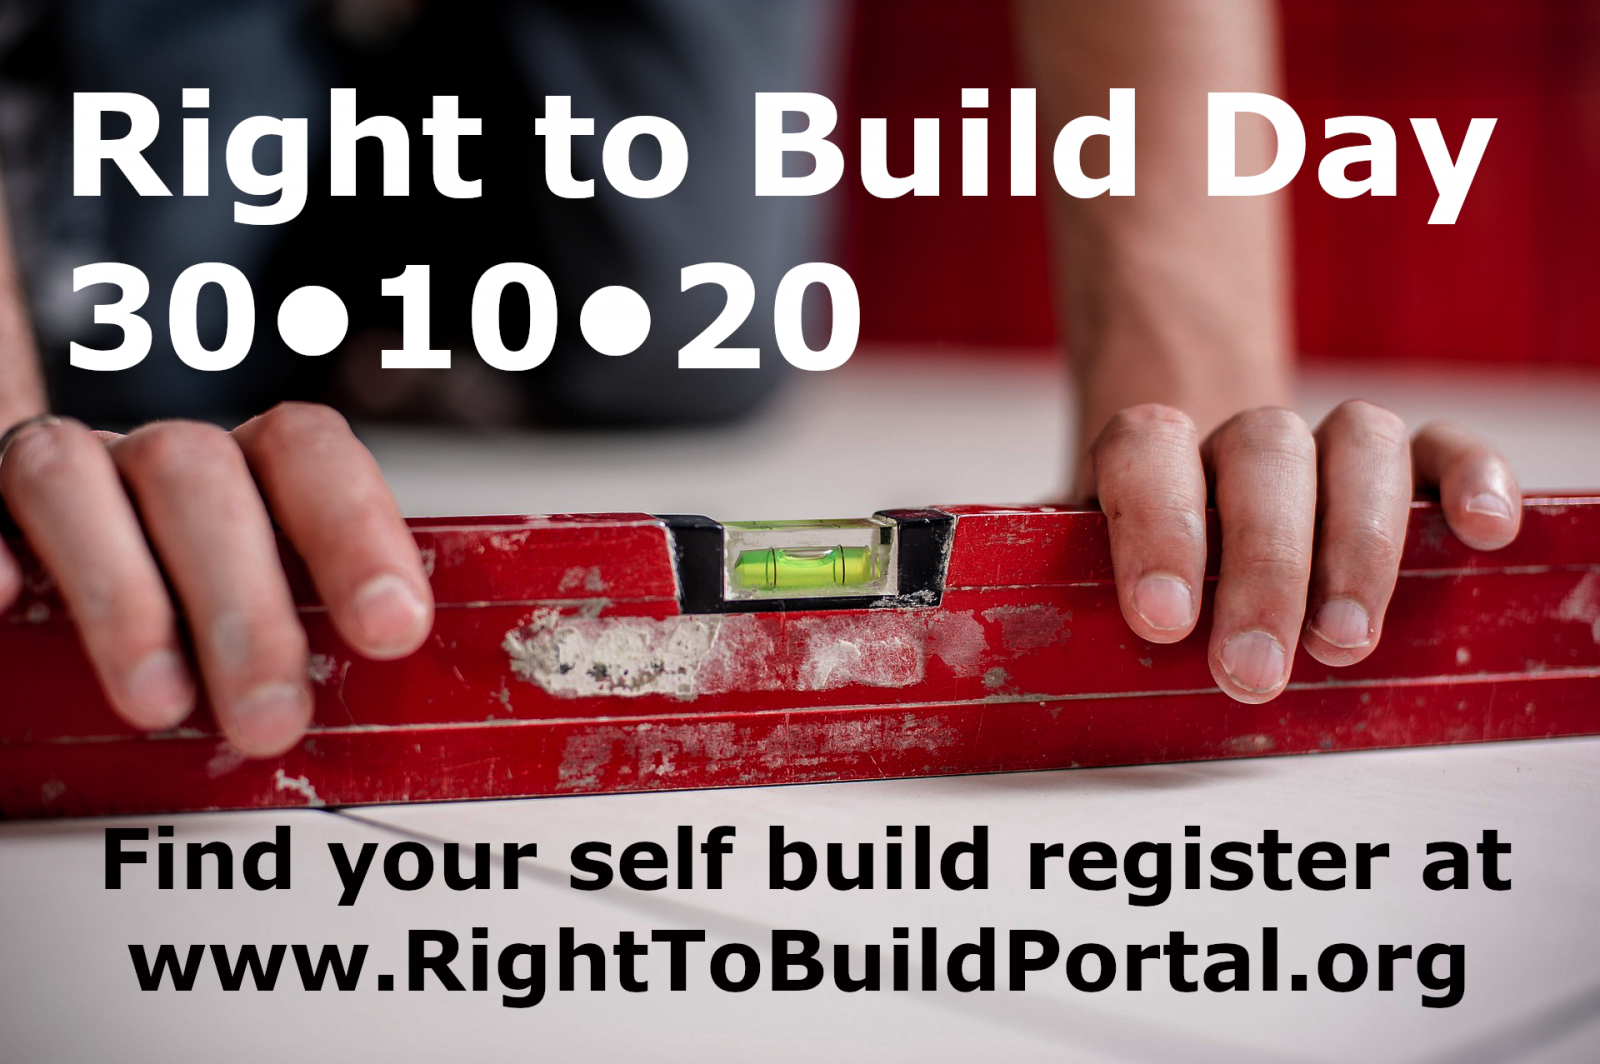 Right to Build Day